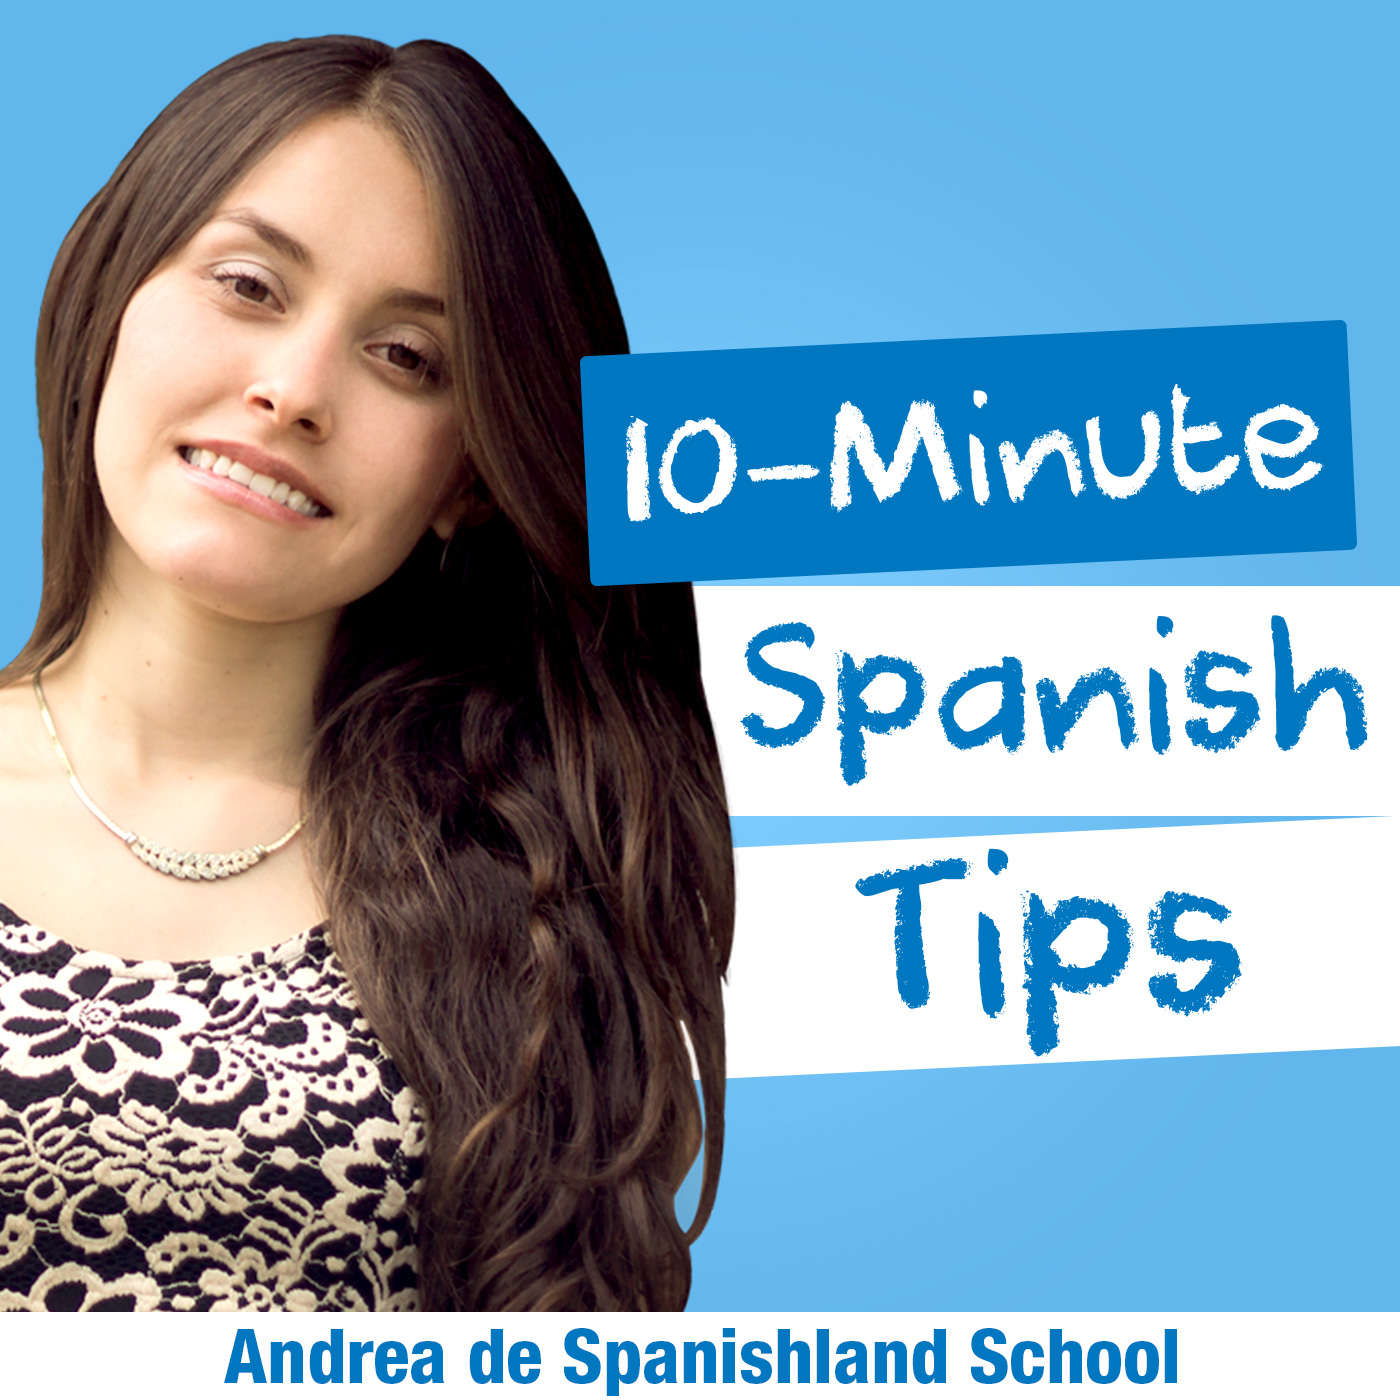 Spanishland School Podcast: Learn Spanish Tips That Improve Your Fluency in 10 Minutes or Less show art